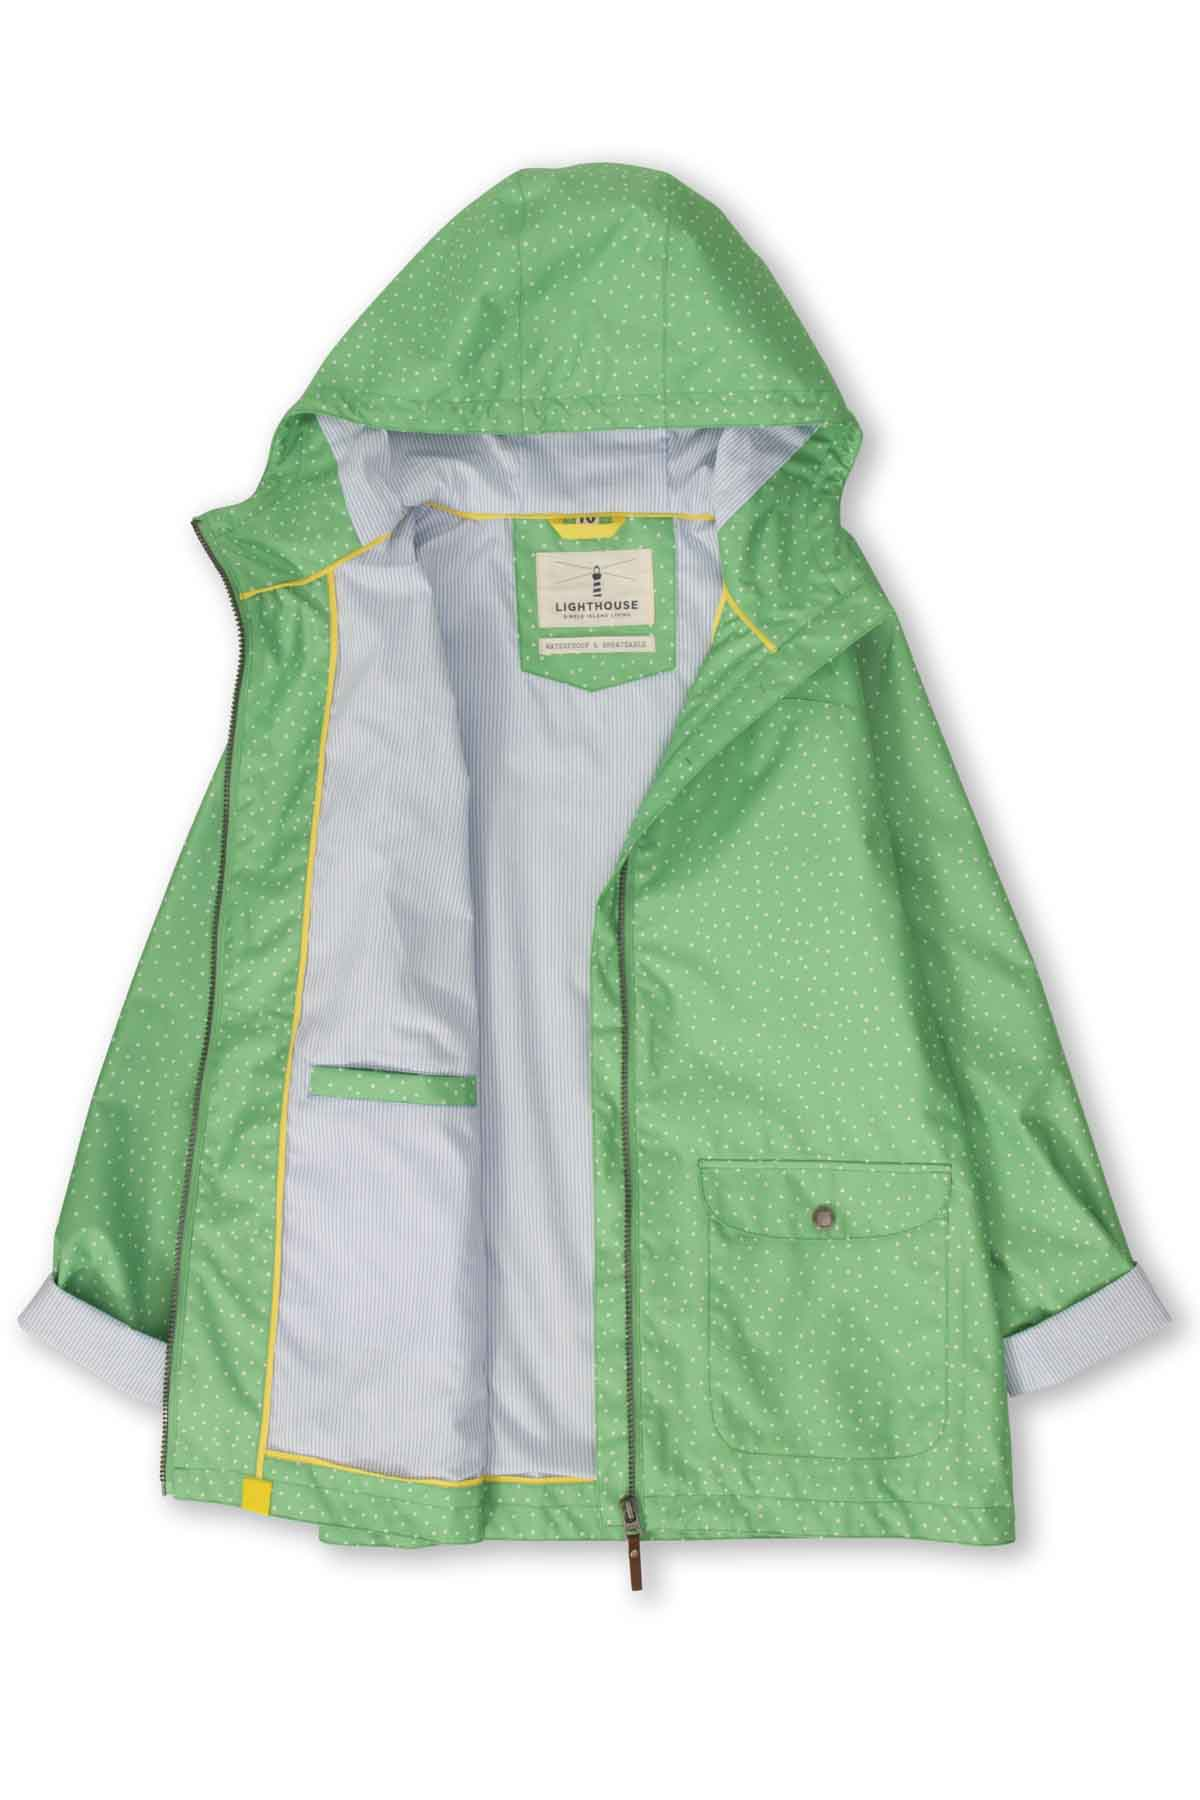 Lighthouse Anya Women's Waterproof Jacket - Seagrass Dot